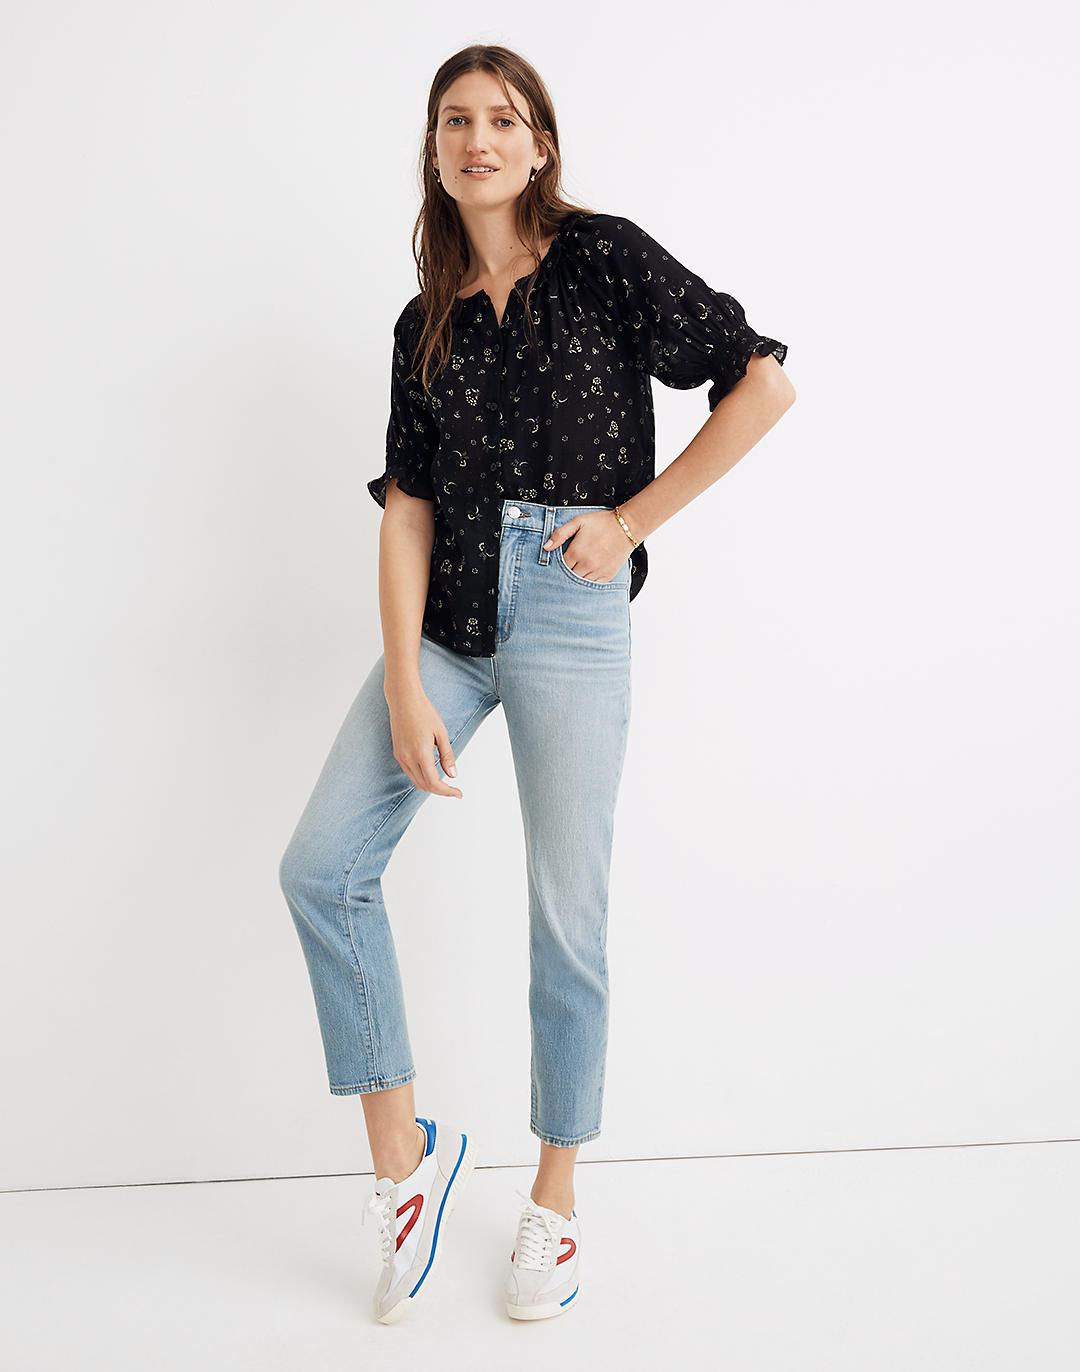 Petite Jeans in Meadowland Wash